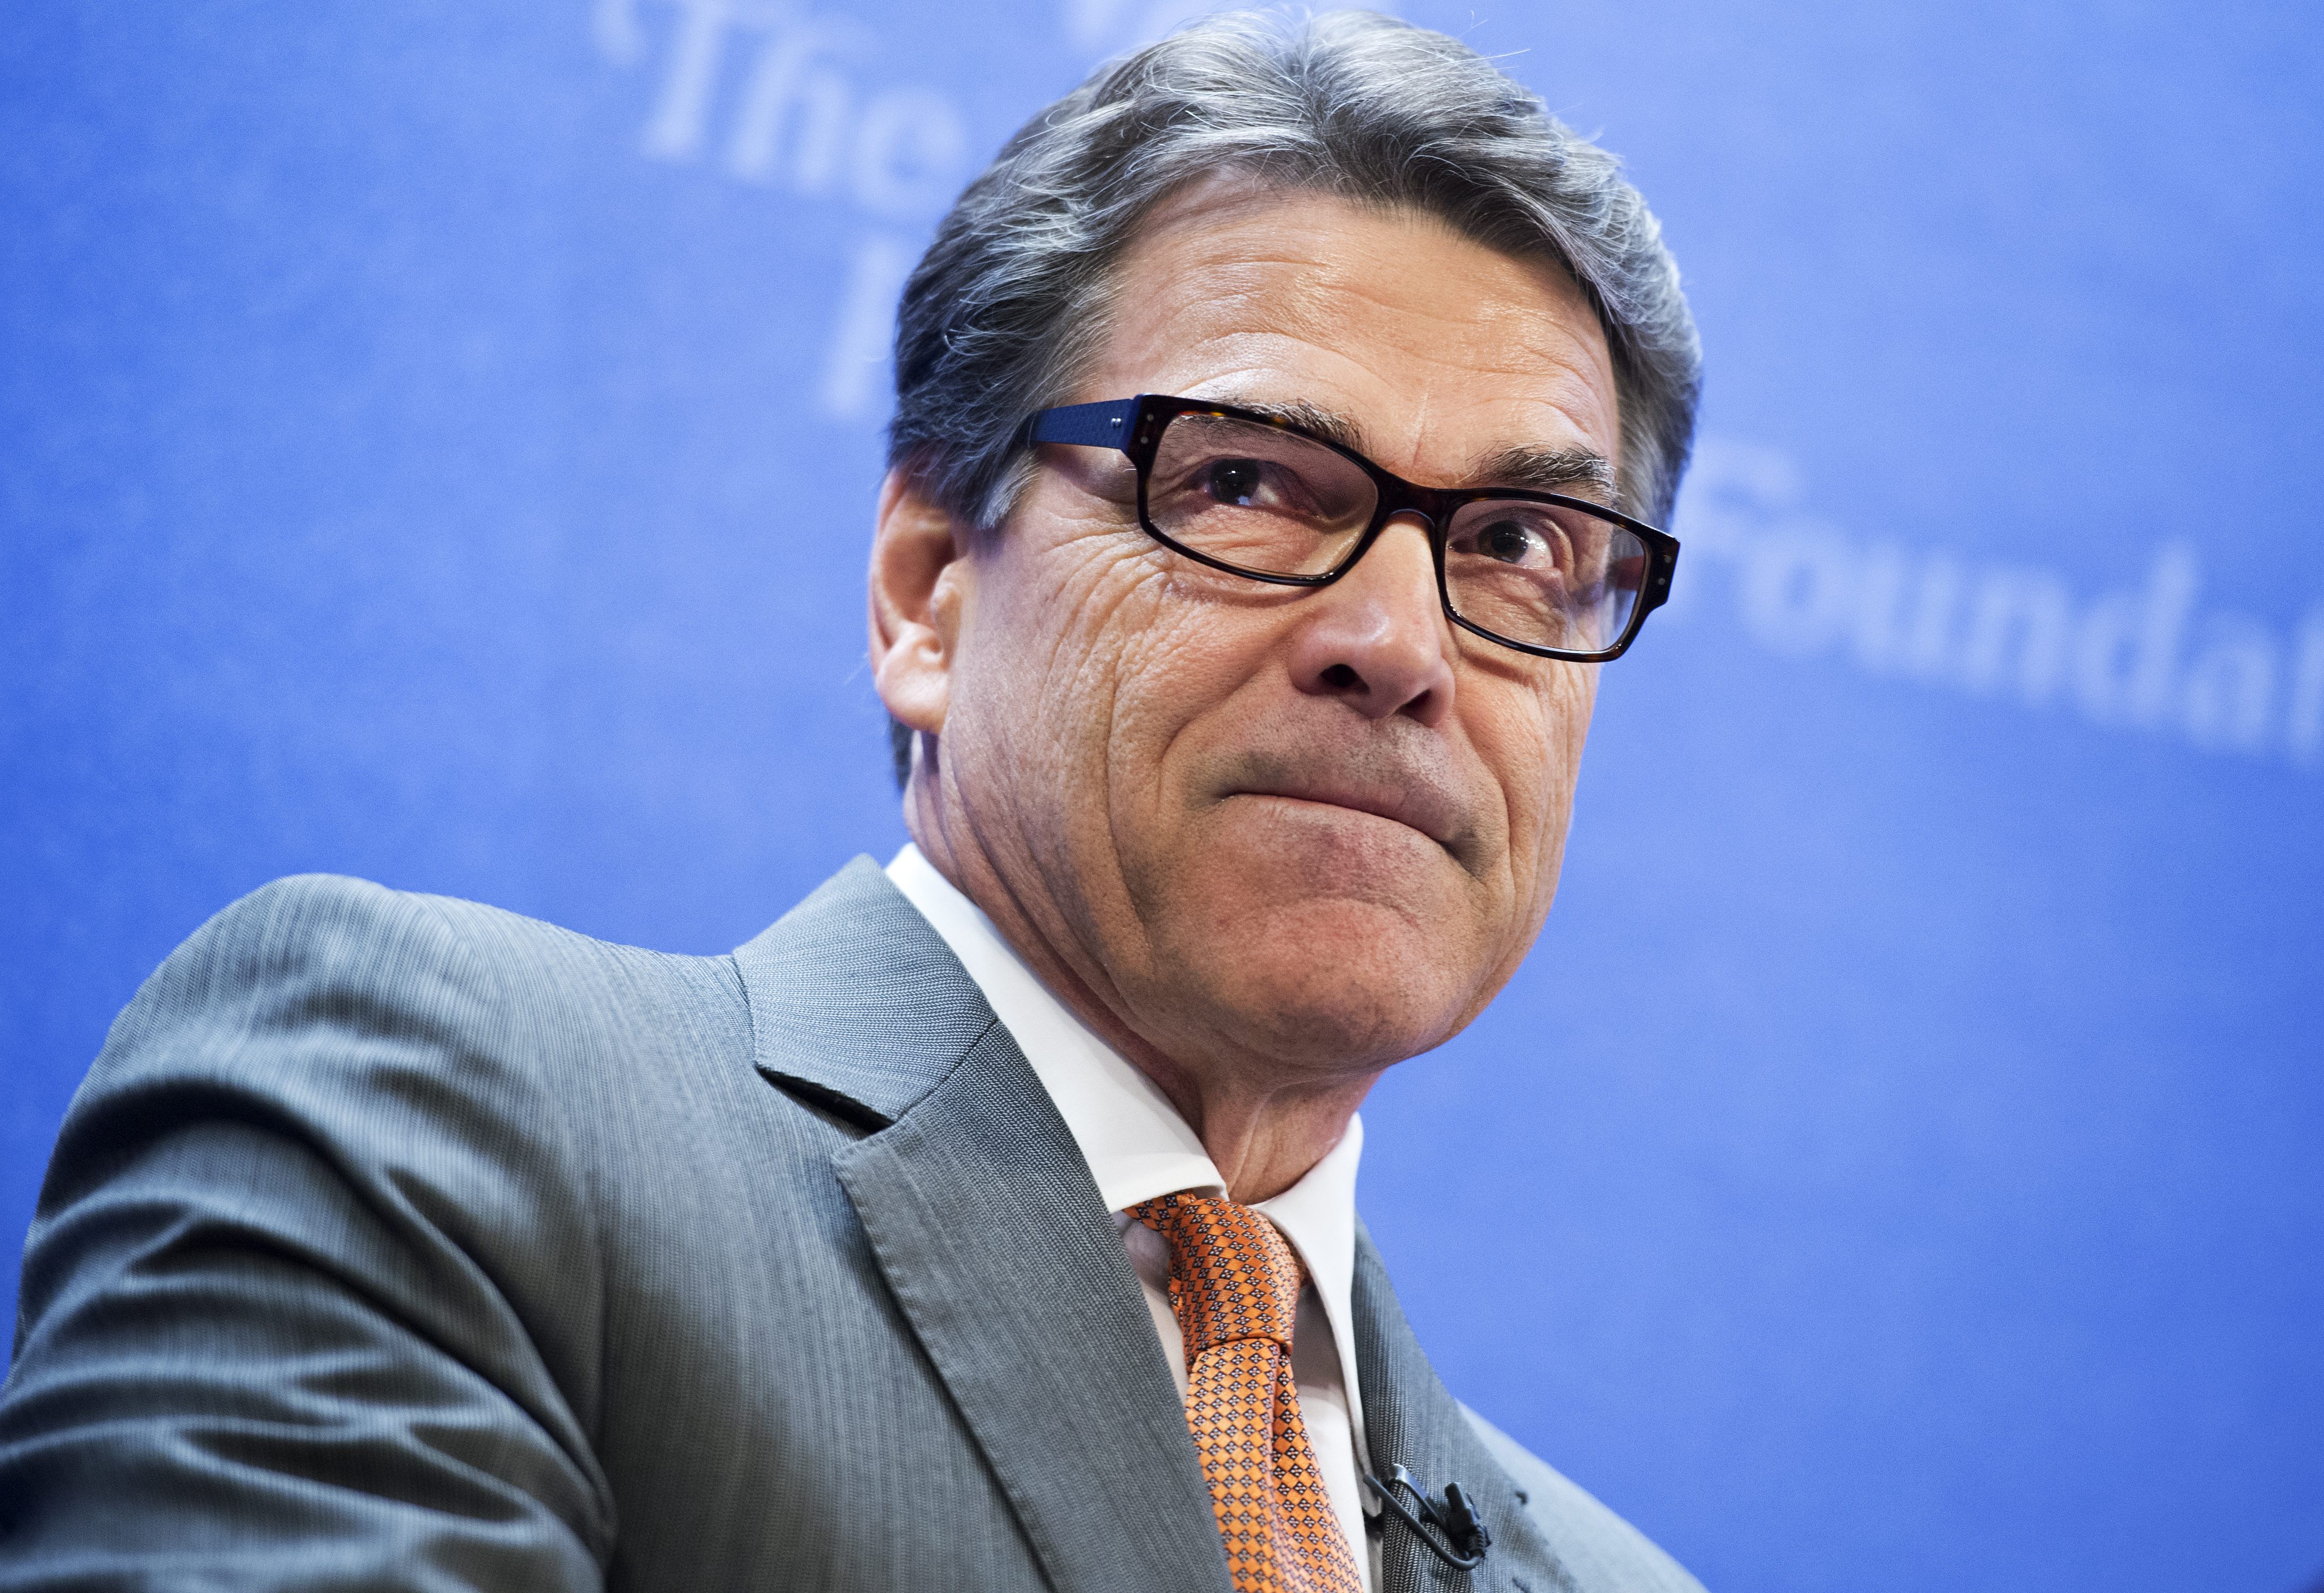 Republican Gov. Rick Perry of Texas,  delivers the keynote address at a Heritage Foundation event titled  The Border Crisis and New Politics of Immigration,  August 21, 2014.